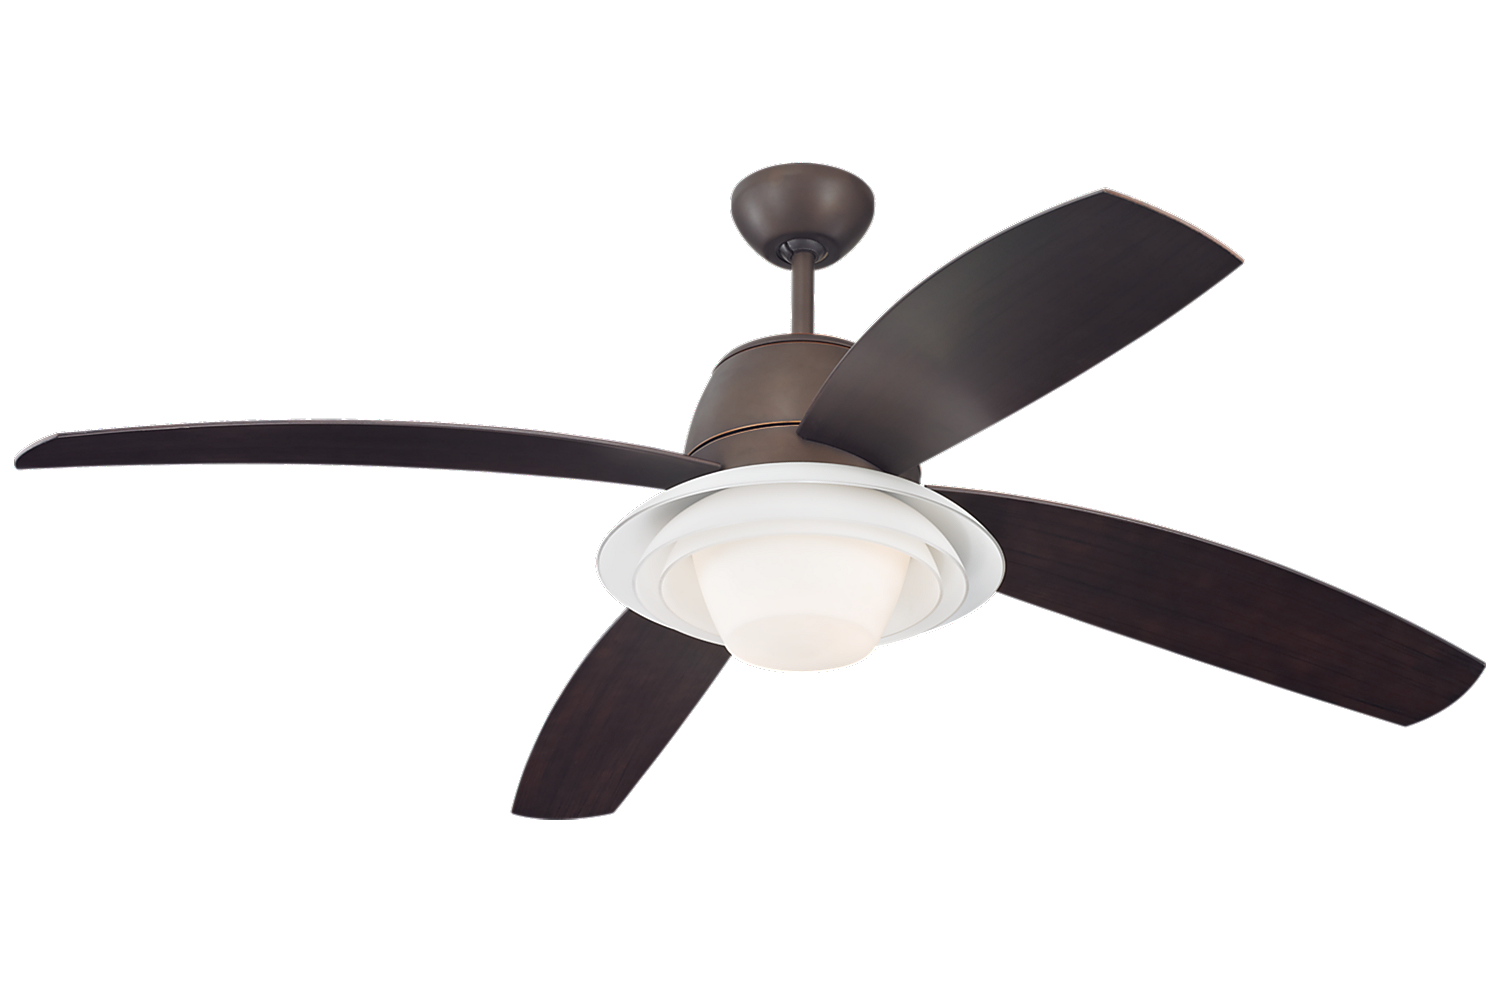 Icon Ceiling Fan | Monte Carlo | Light up my world | Pinterest ... for Ceiling Fan Icon Png  55nar